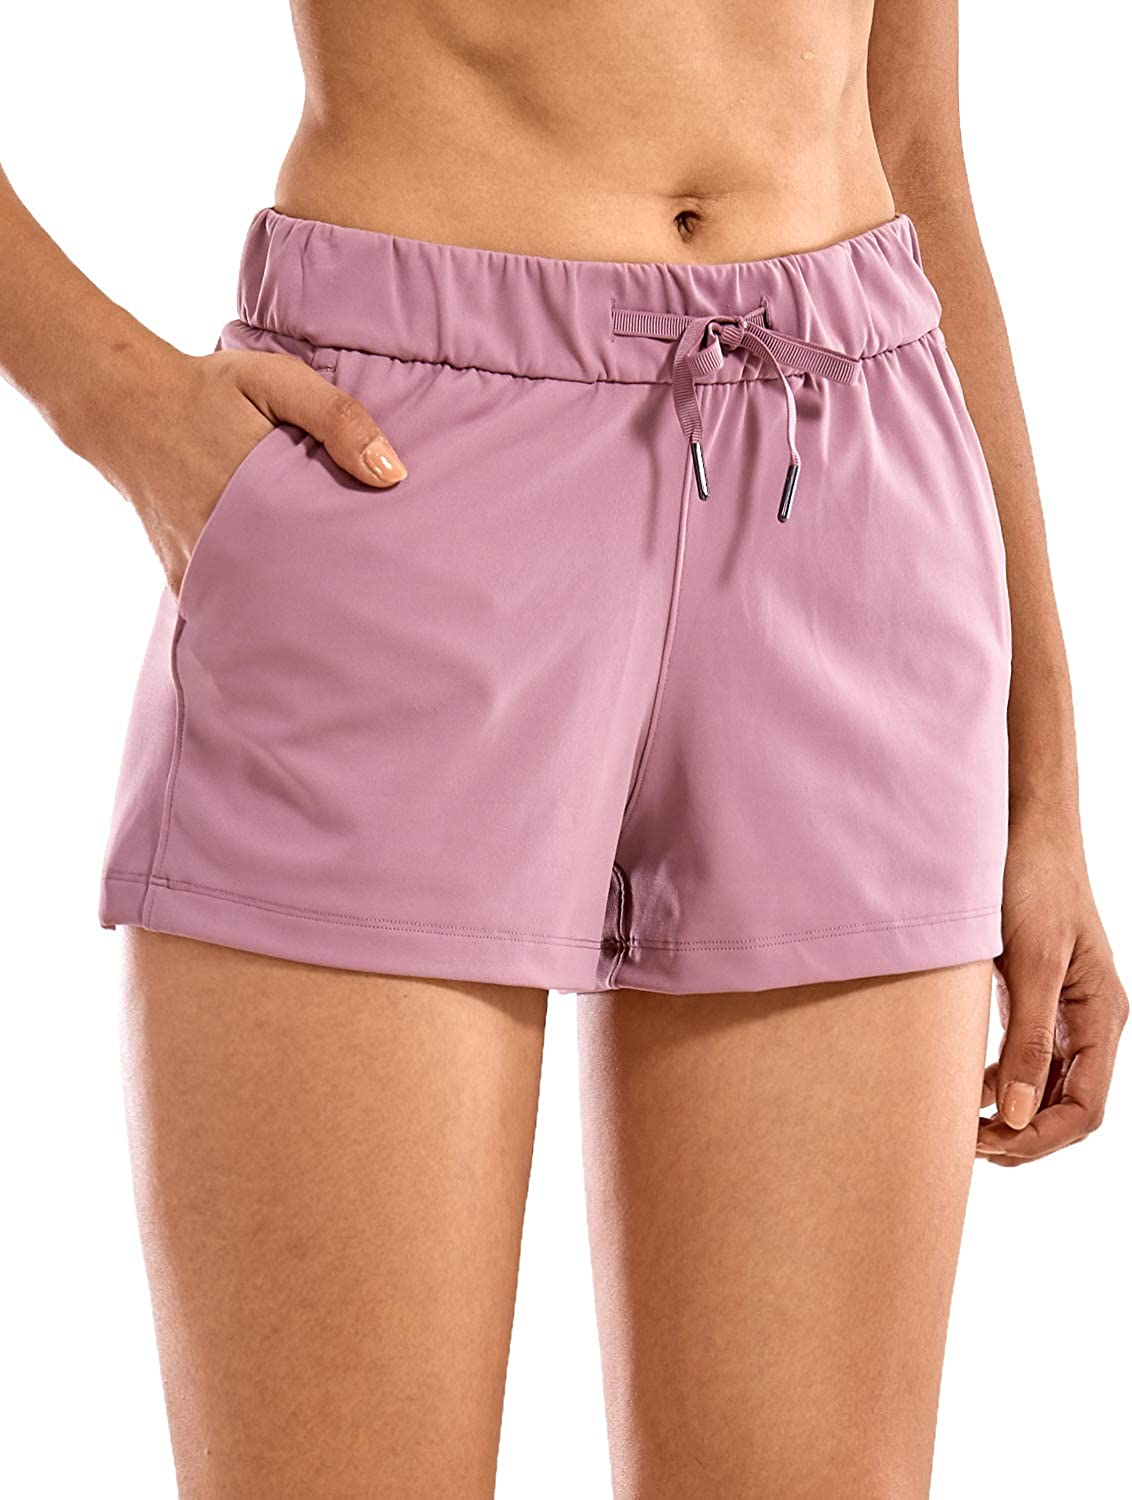 CRZ YOGA Womens Stretch Lounge Travel Shorts Elastic Waist Comfy Workout Shorts with Pockets 2.5 Inches